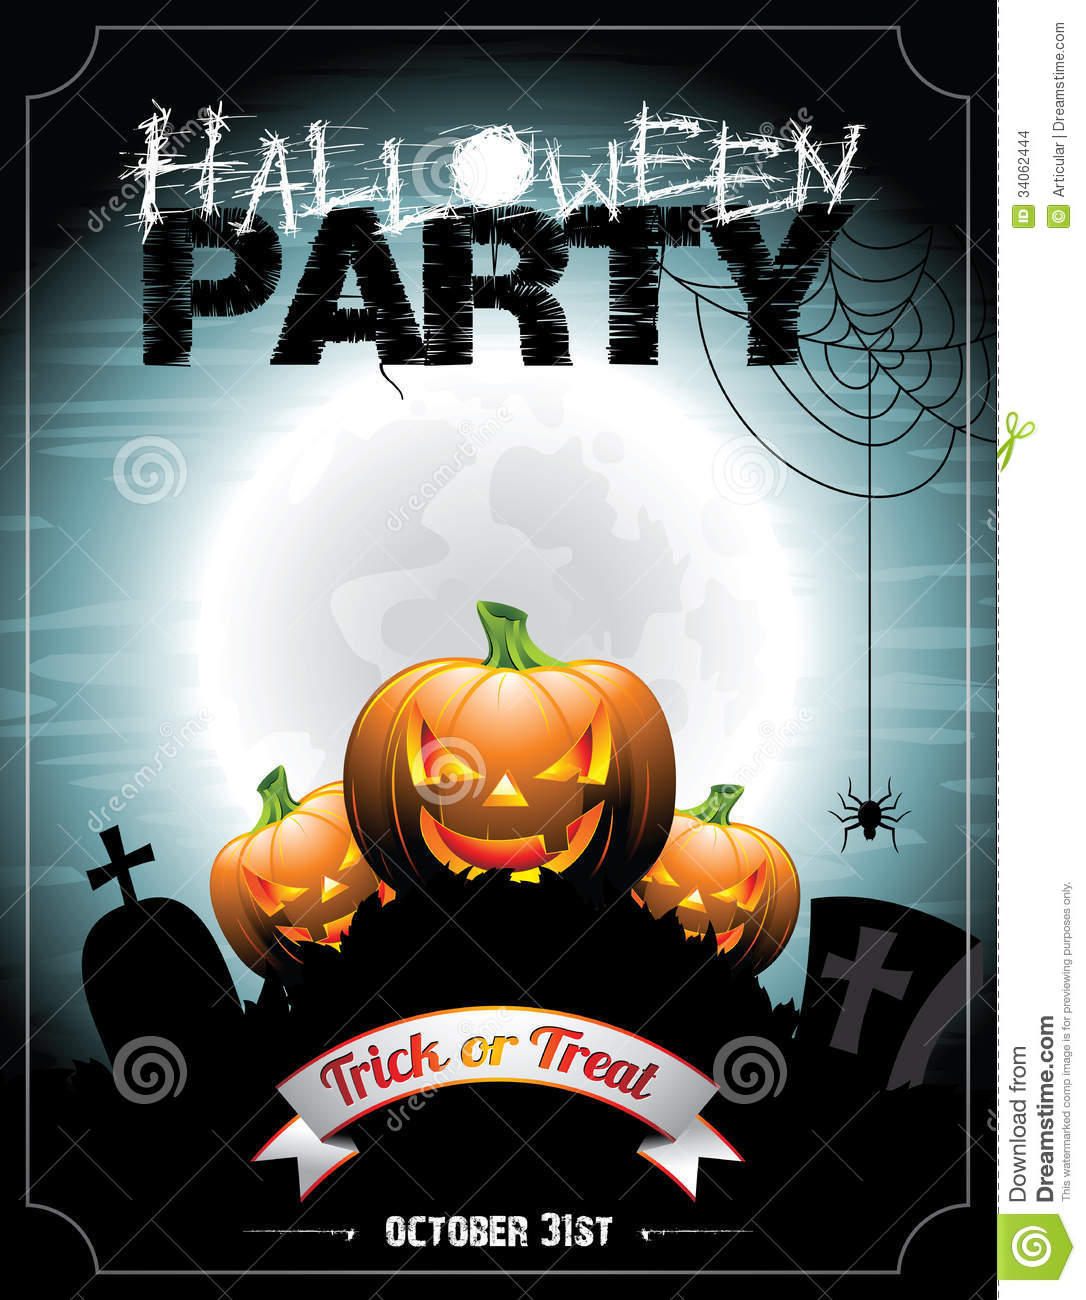 Vector illustration on a Halloween Party theme With pumkins.